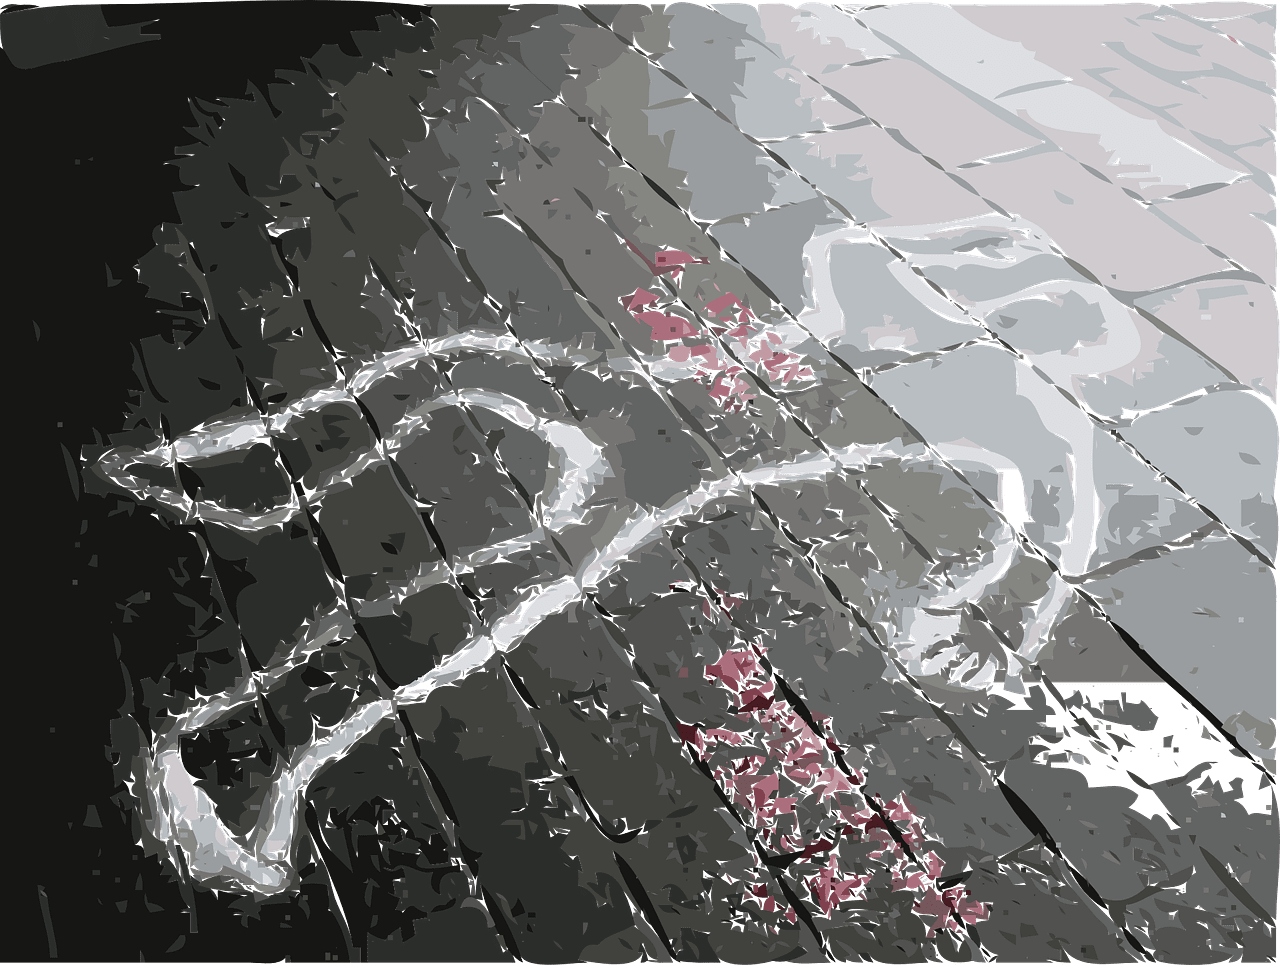 More murders occurred!   Photo: Pixabay/Clker-Free-Vector-Images